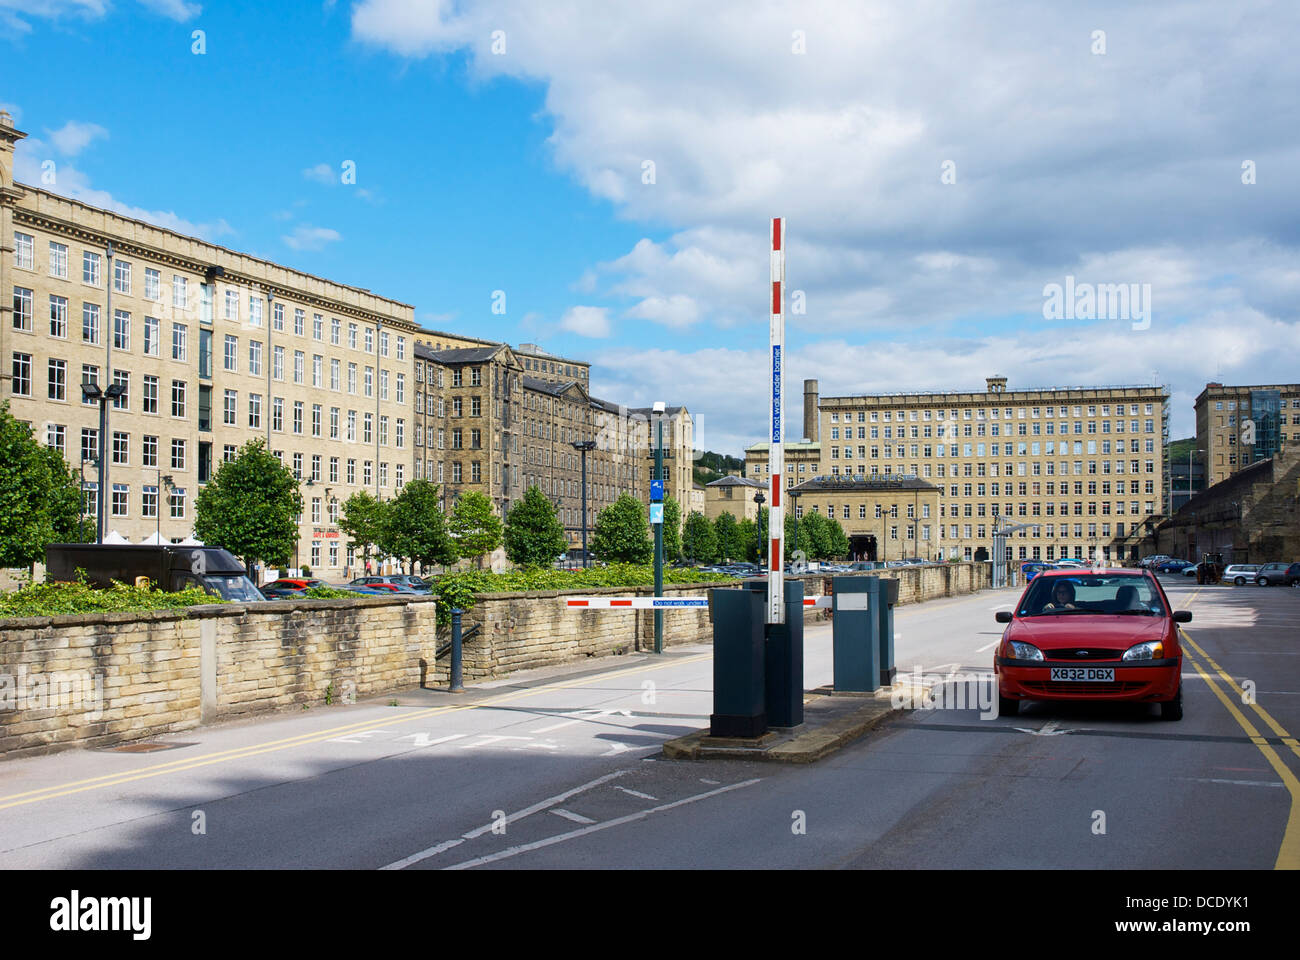 Car going through raised barrier to leave the car park of Dean Clough Mills, Halifax, West Yorkshire, England UK - Stock Image